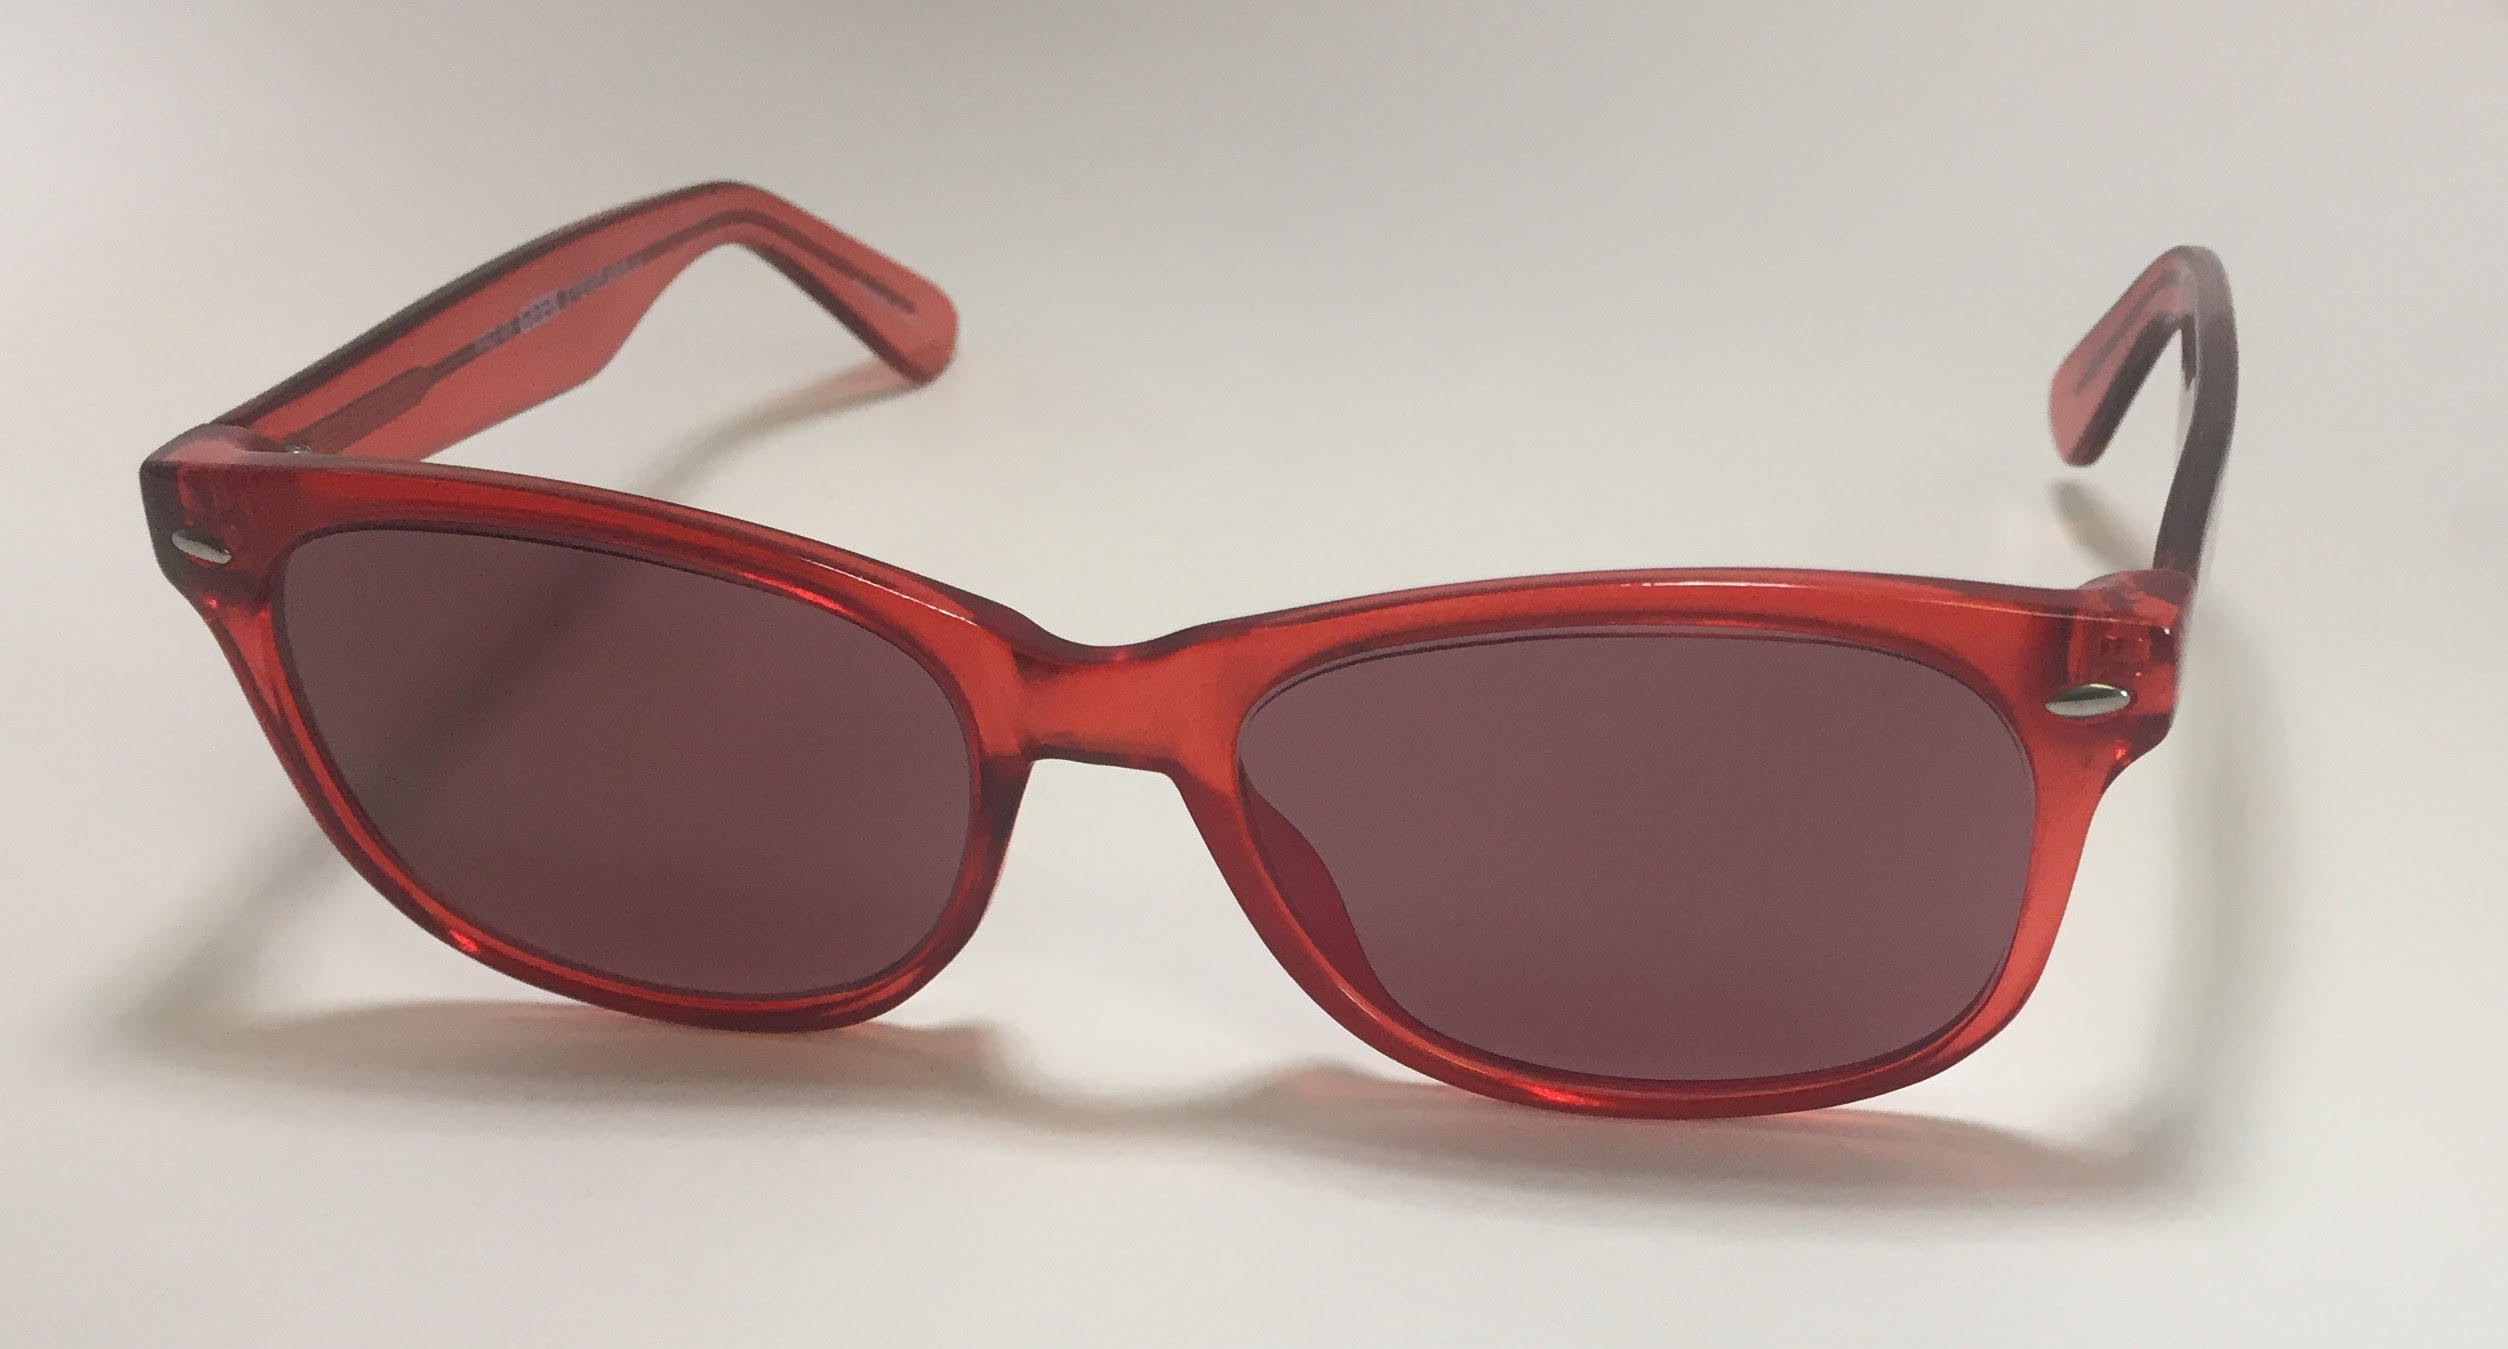 POLYCARBONATE SODIUM FLARE, UV/IR GLASSES IN RED